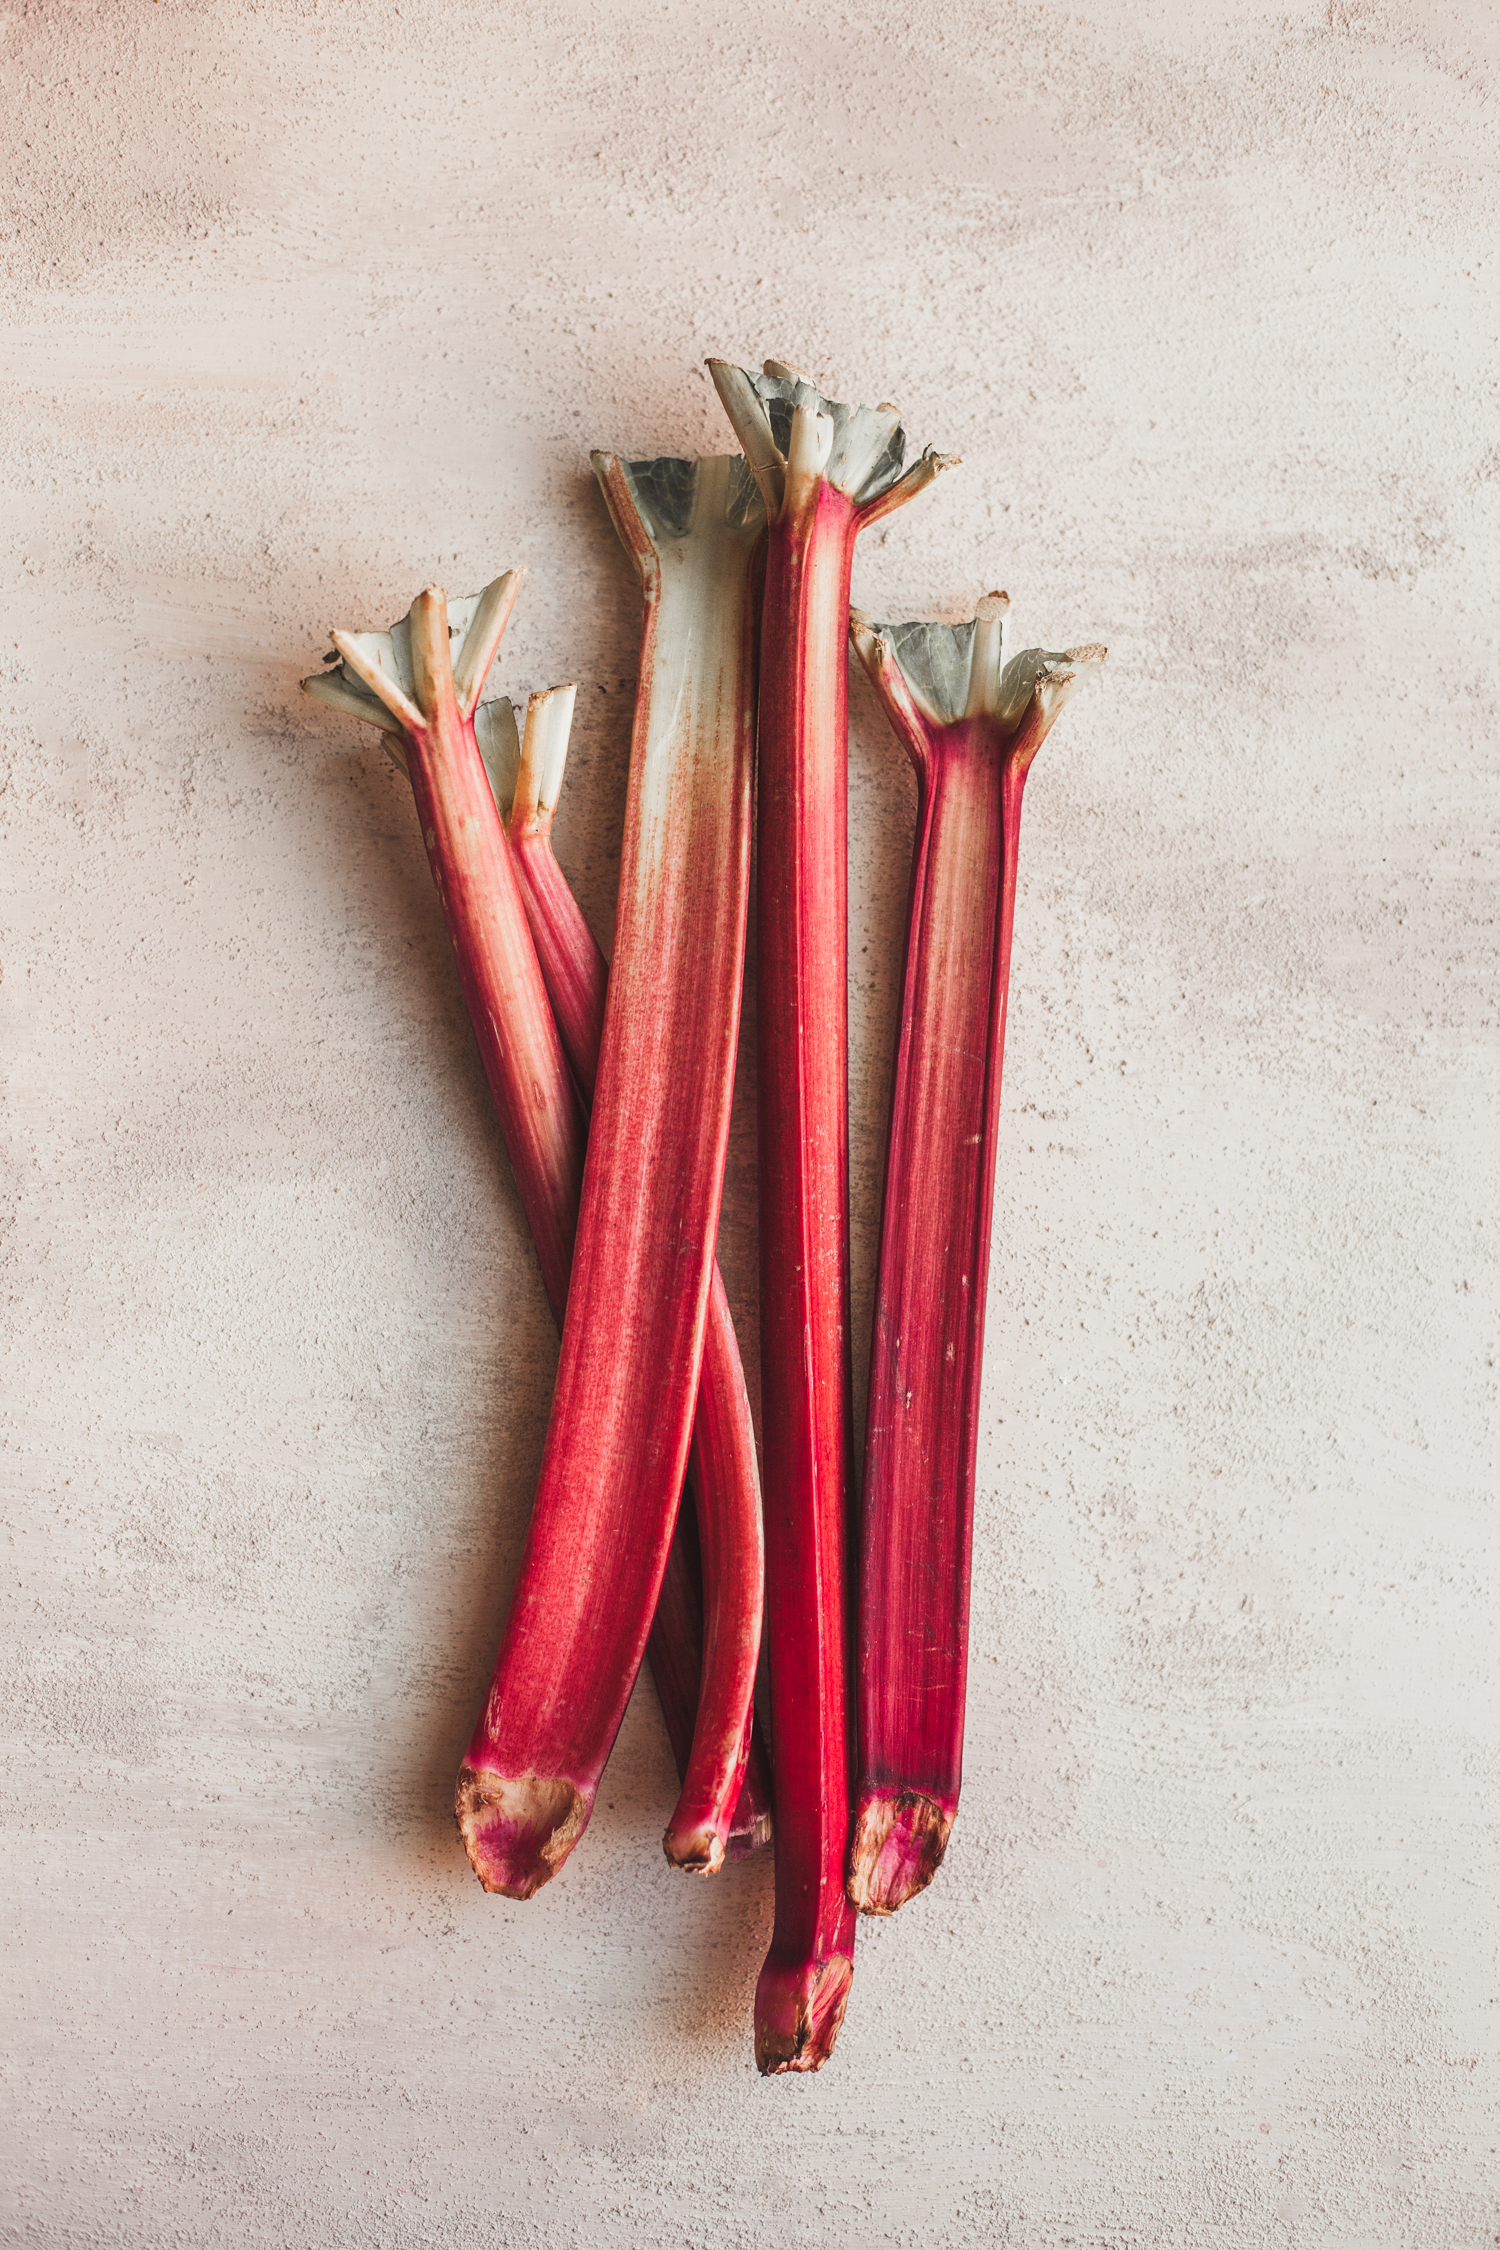 Rhubarb Celli Ripieni - Old School Jam Cookies from Abruzzo, Join our Vegan Retreat in Abruzzo! - Golubka Kitchen